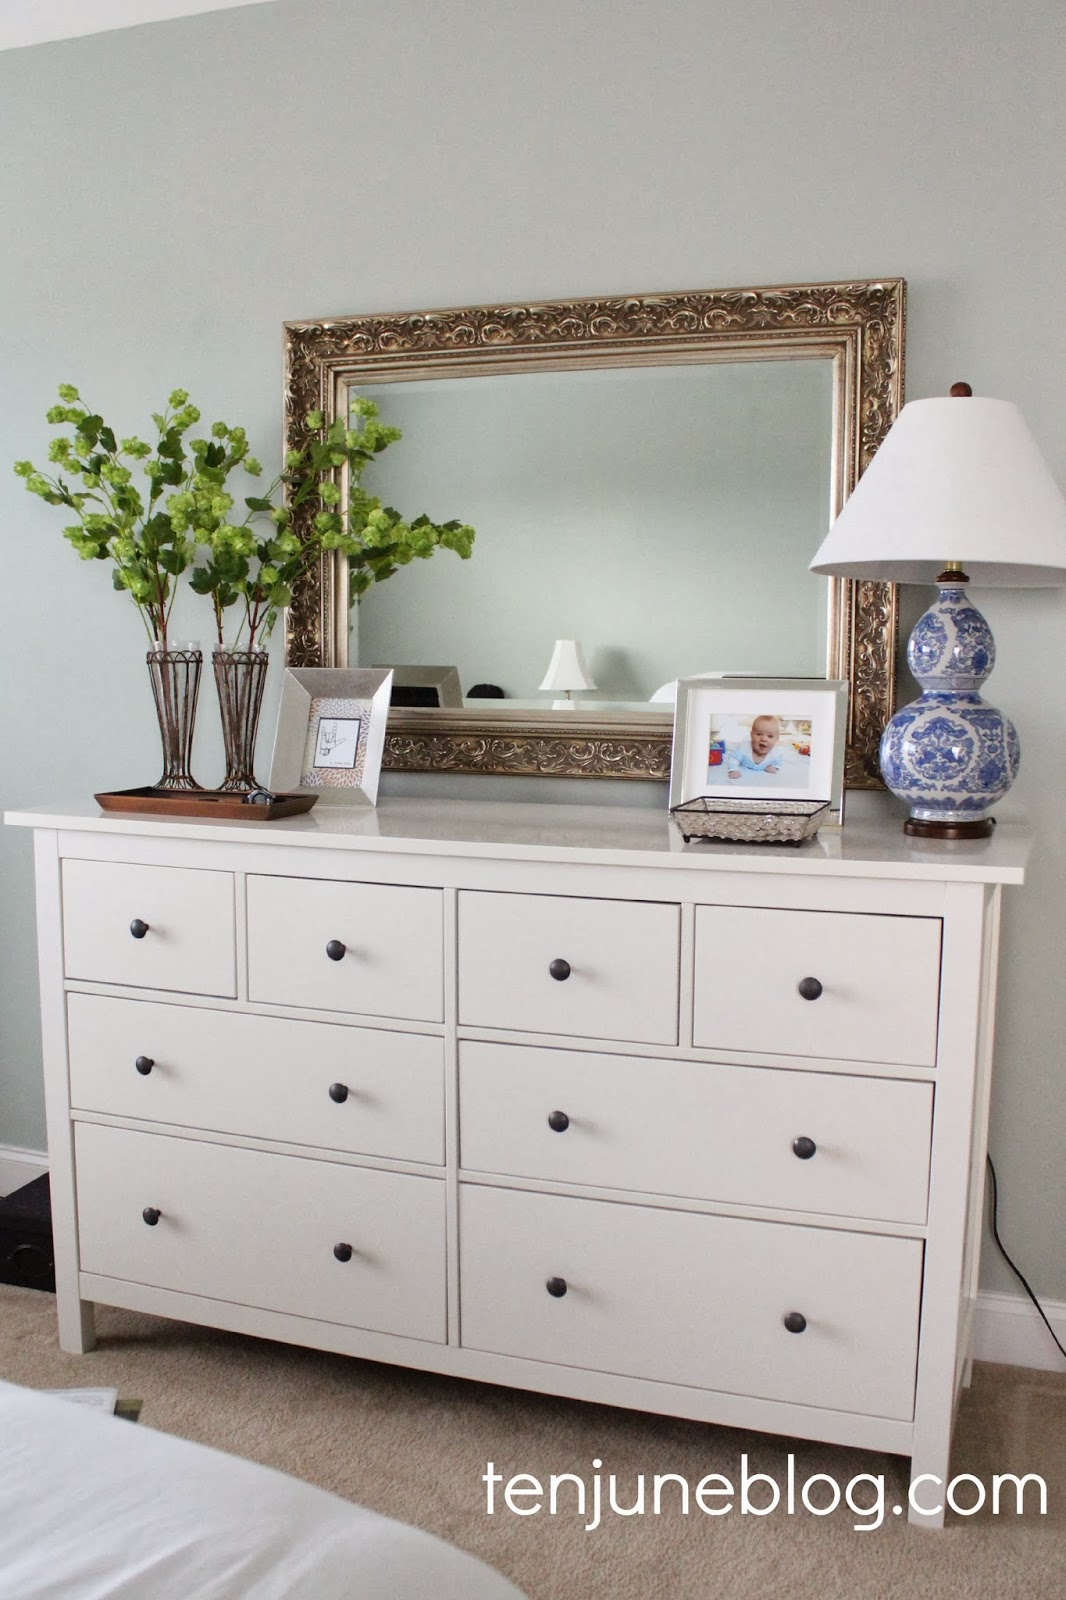 Ten june master bedroom dresser vignette Ideas to decorate master bedroom dresser